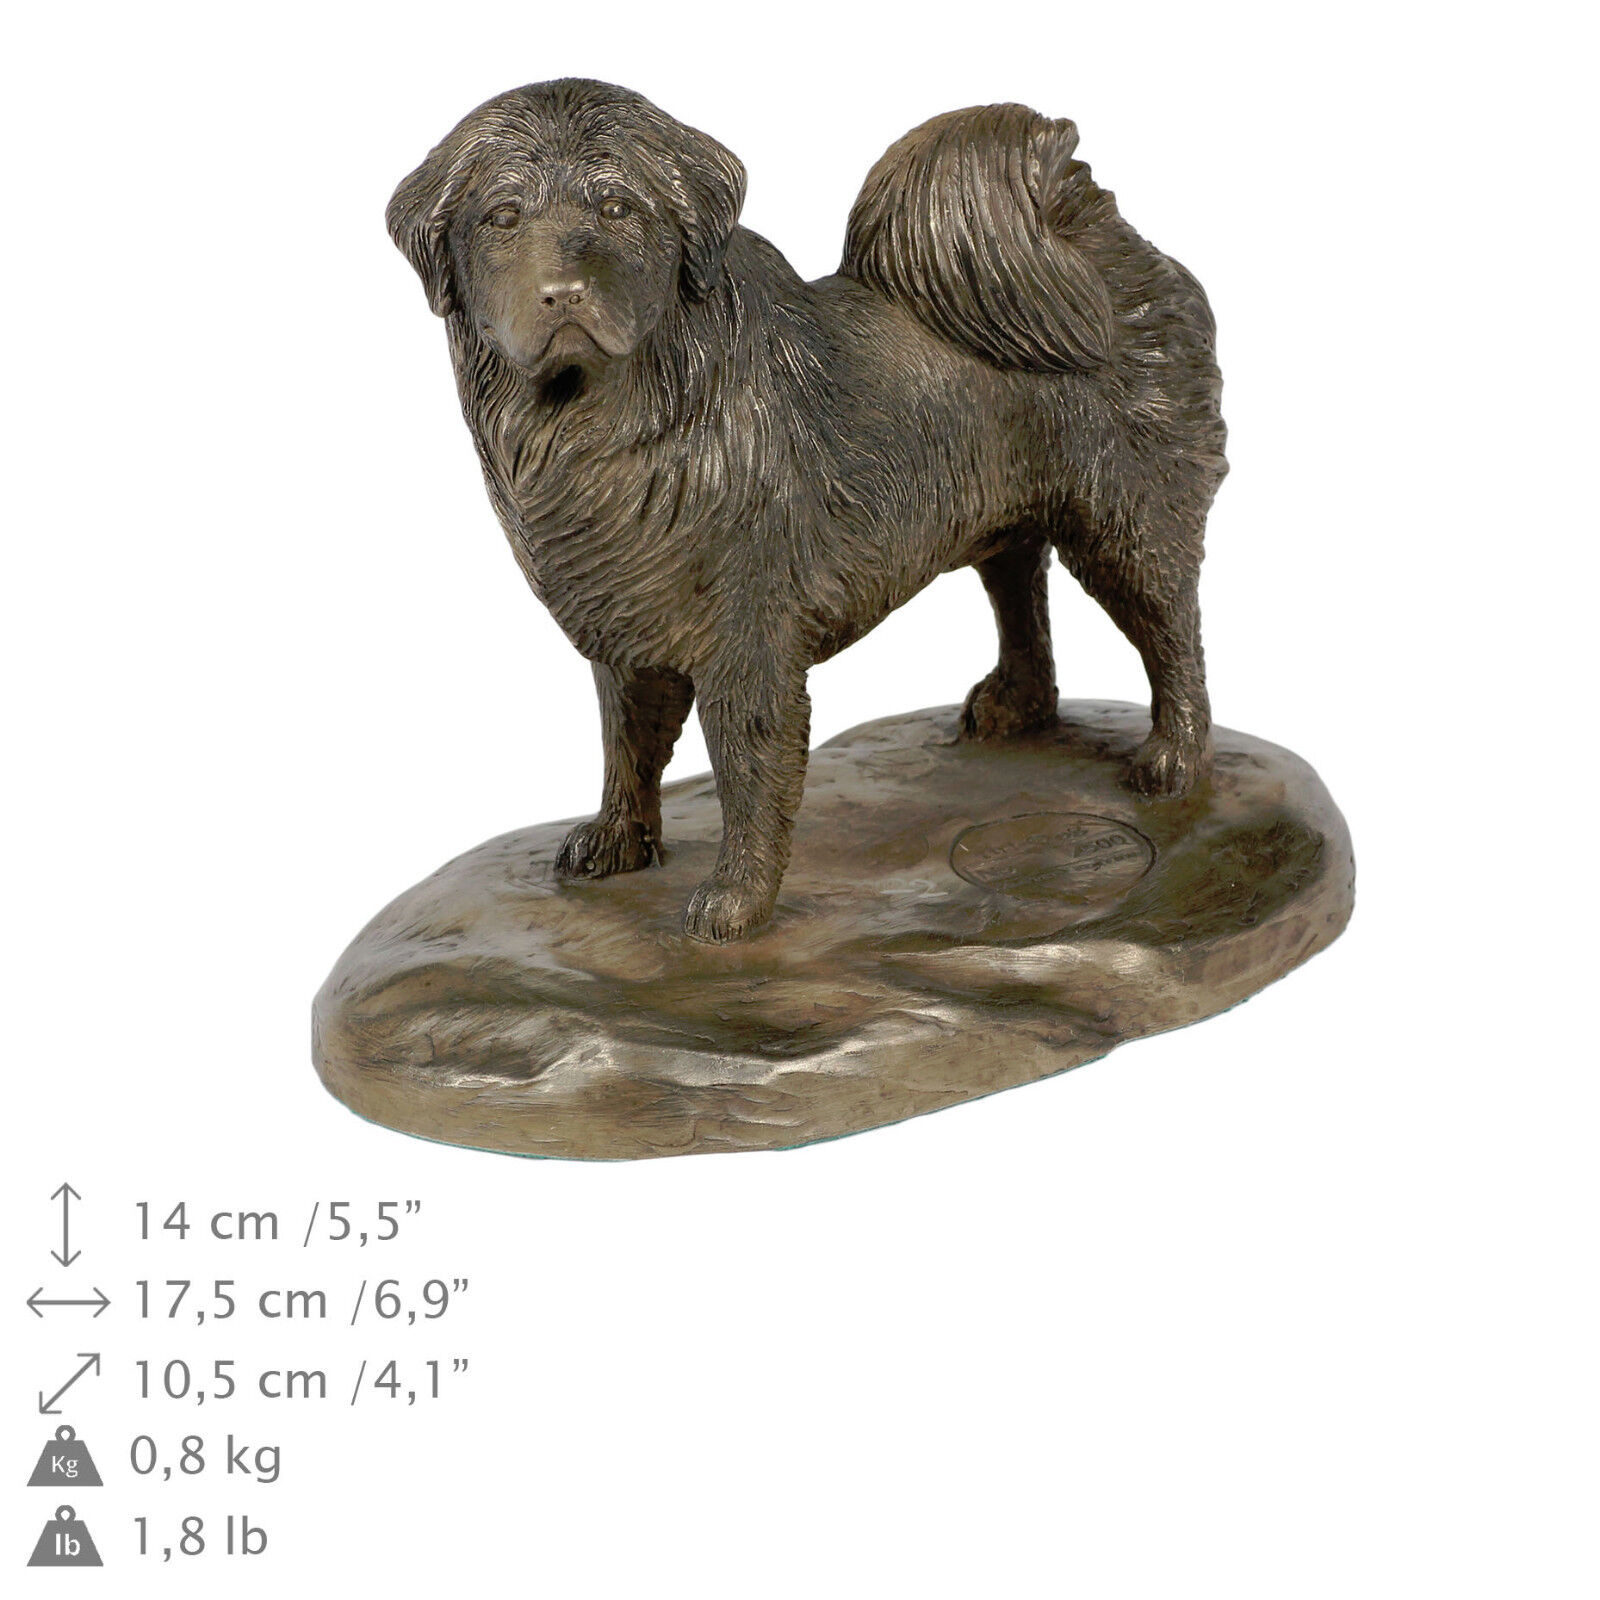 Tibetan Mastiff, busto statua di cane su base di legno, Art Dog IT